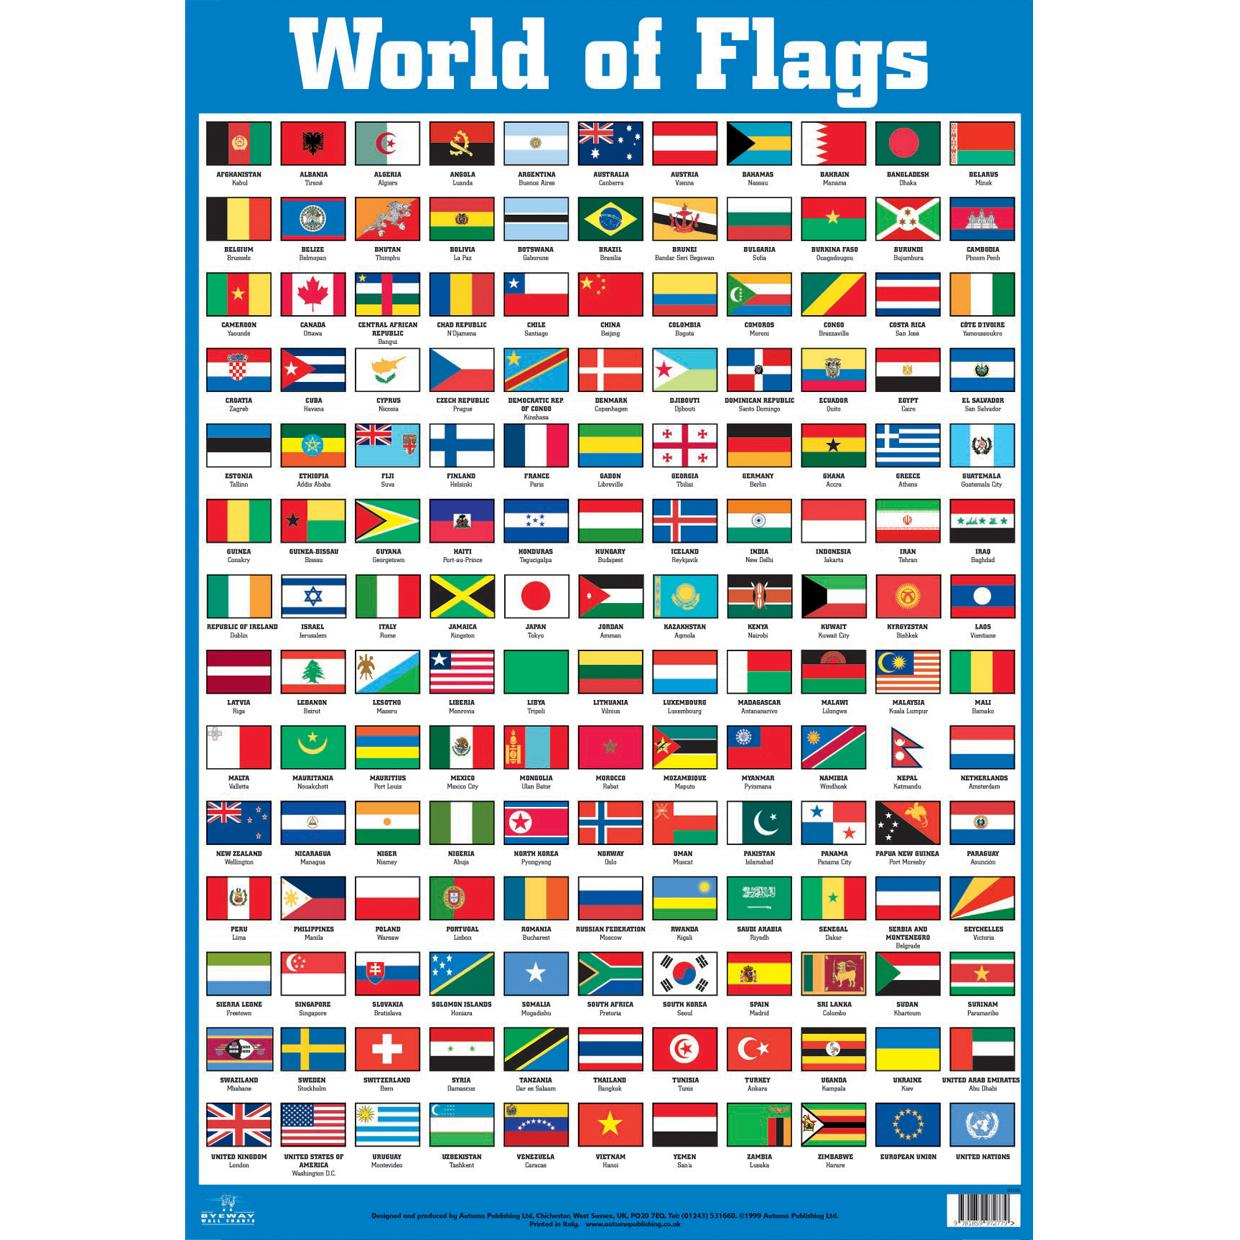 Flags of the World - Fotolip